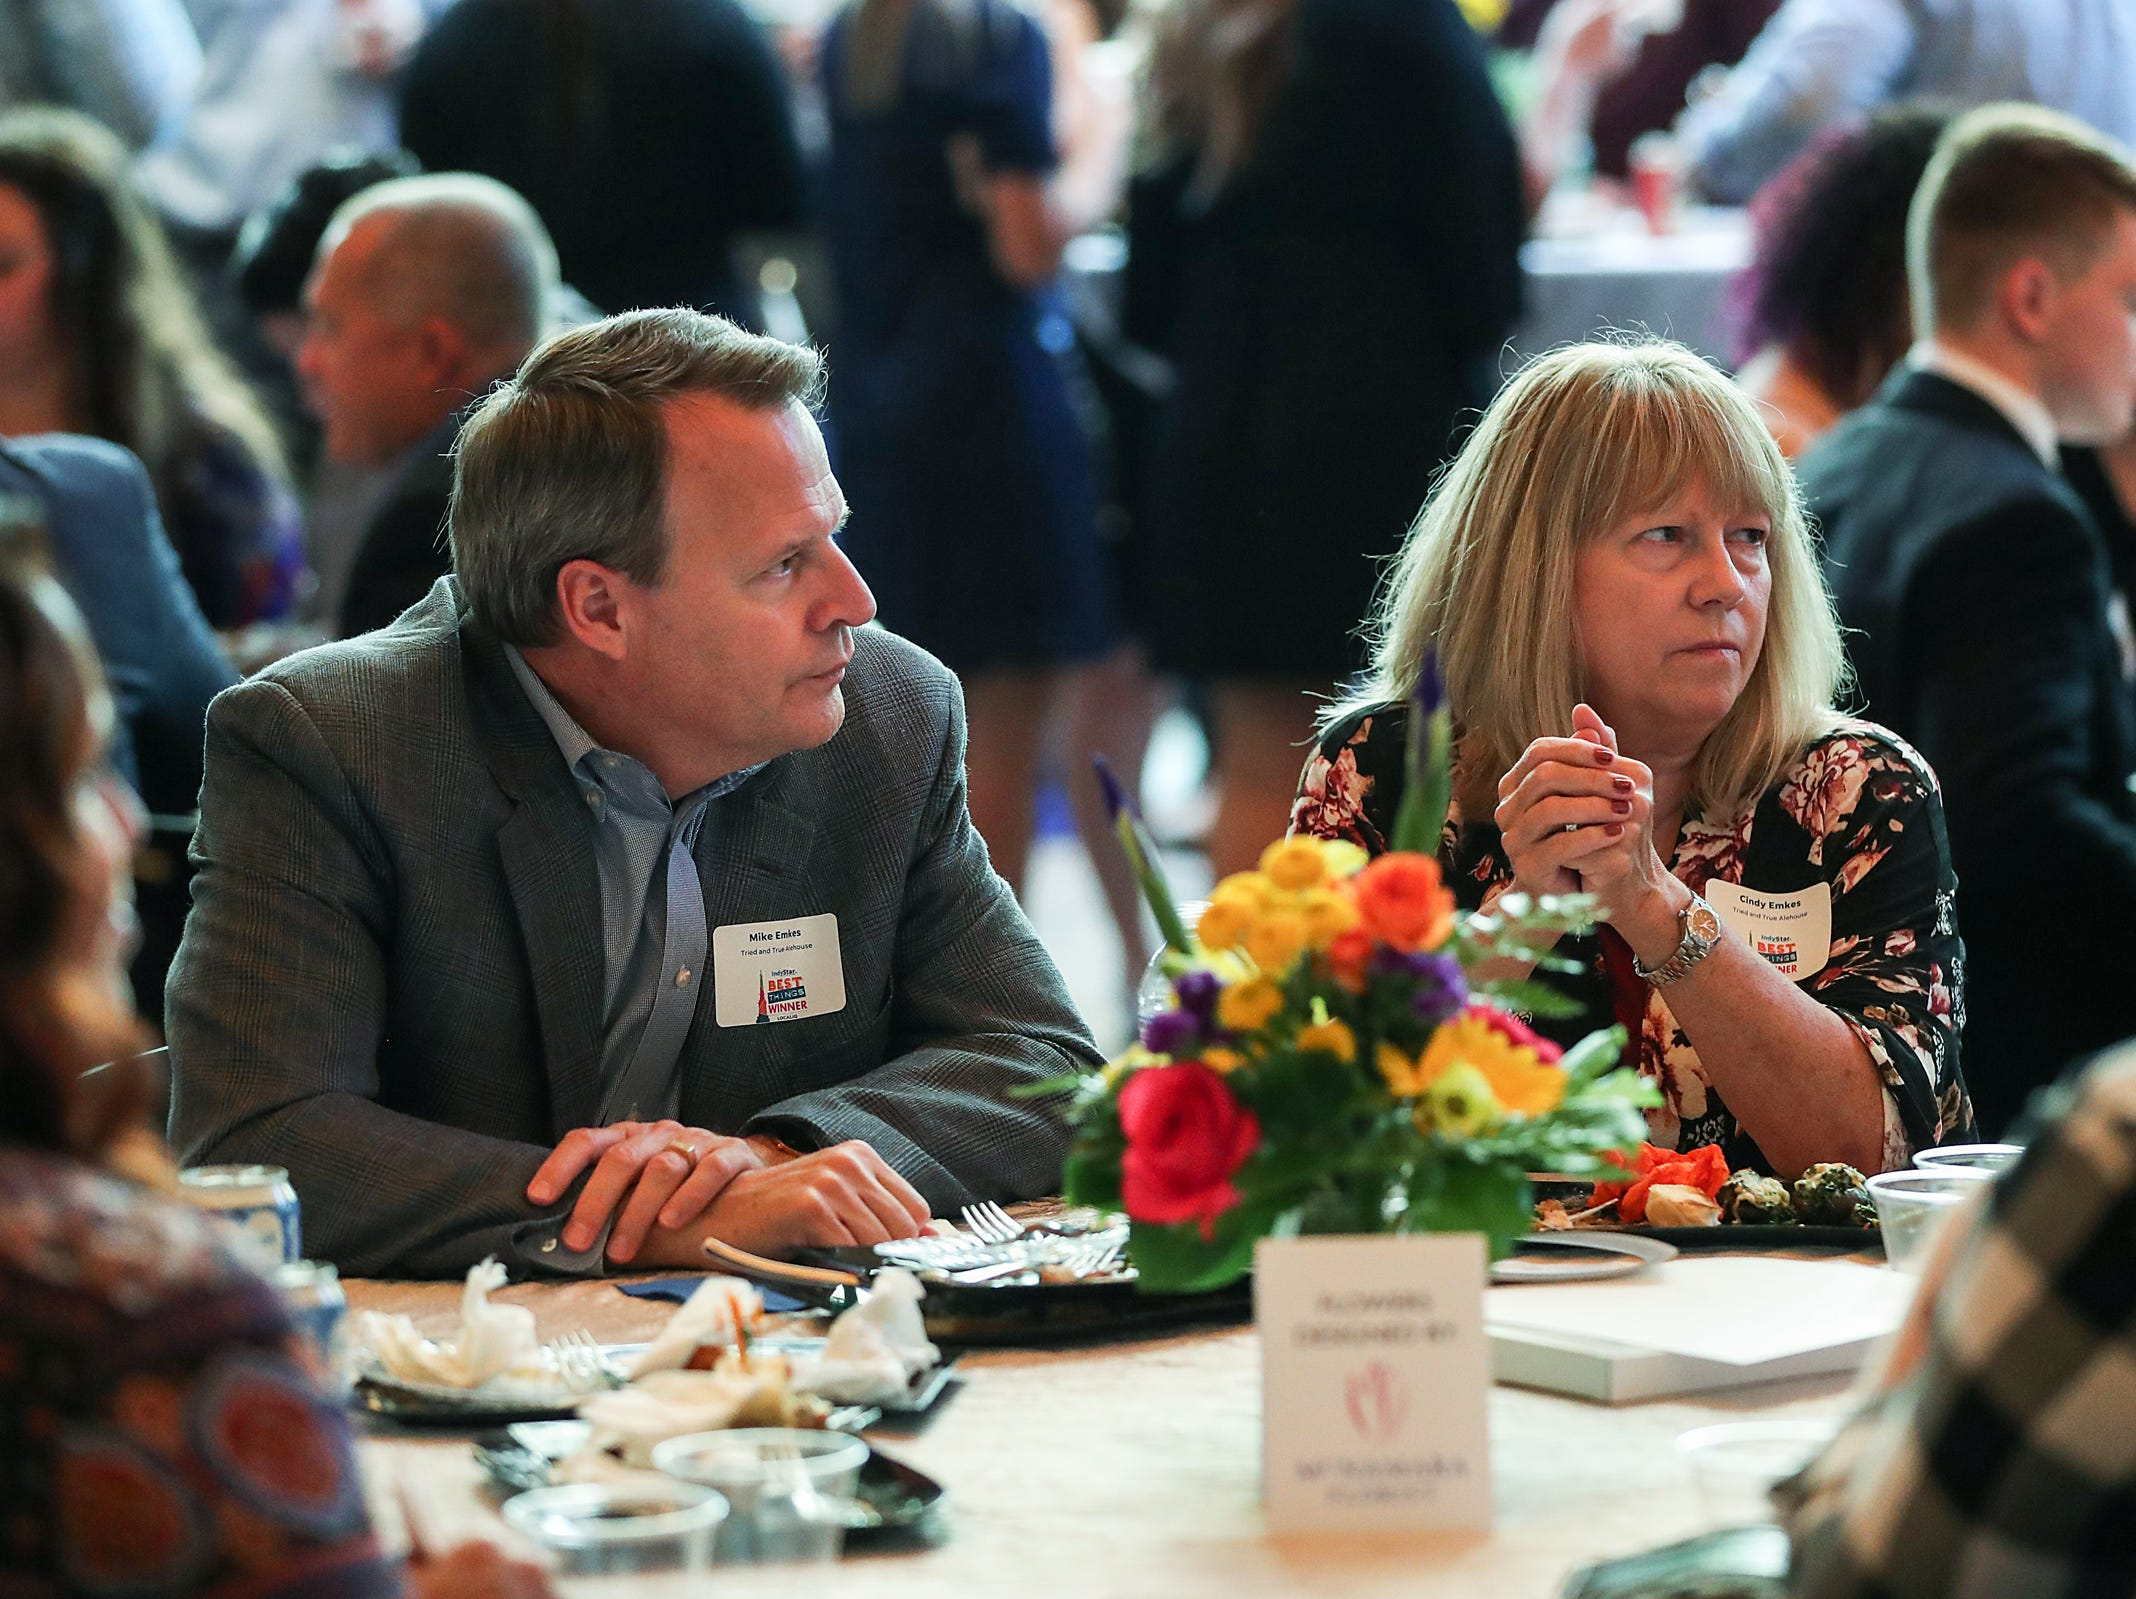 Award winners and their family and friends enjoy the inaugural Best Things Indy 2018 award ceremony, held by IndyStar at One America Tower in Indianapolis, Thursday, Sept. 27, 2018.